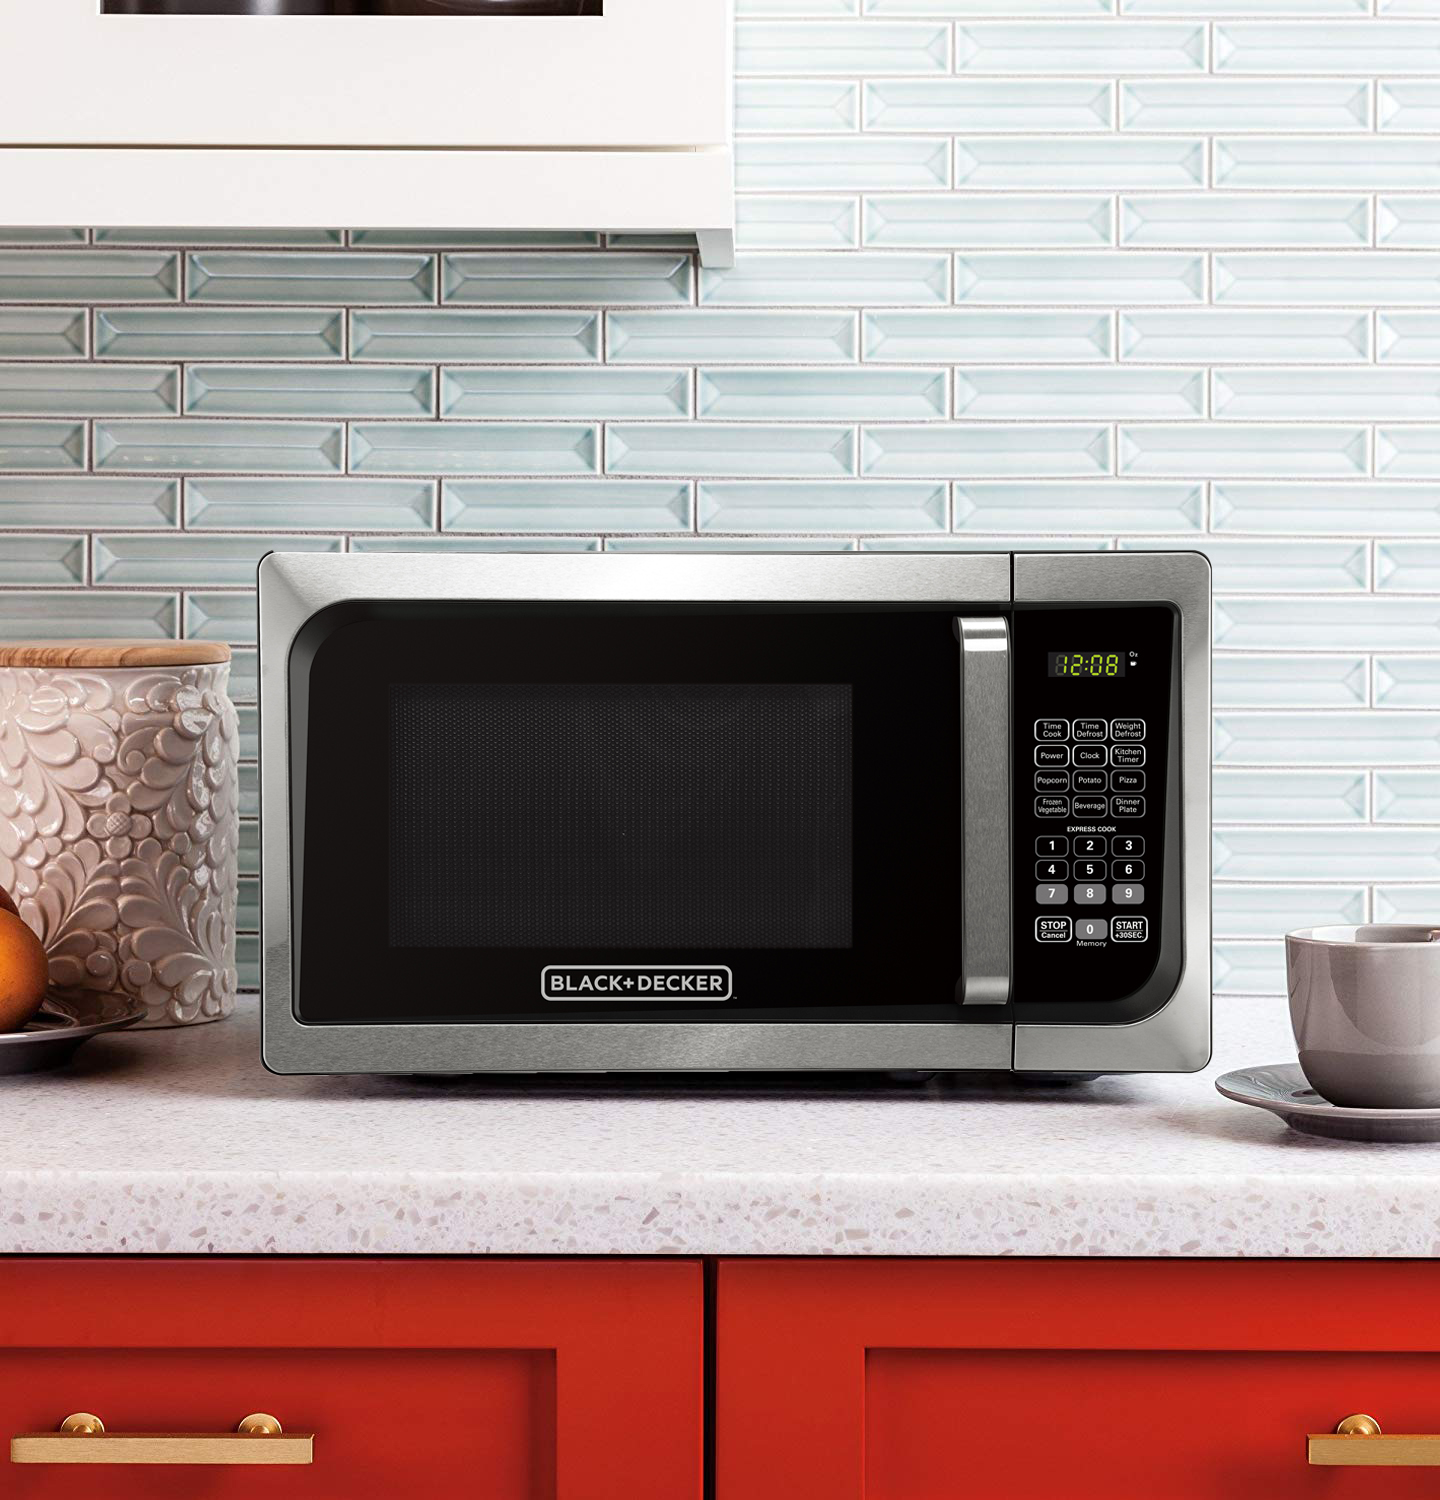 black decker em925ajk p1 0 9 cu ft microwave with pull handle stainless steel